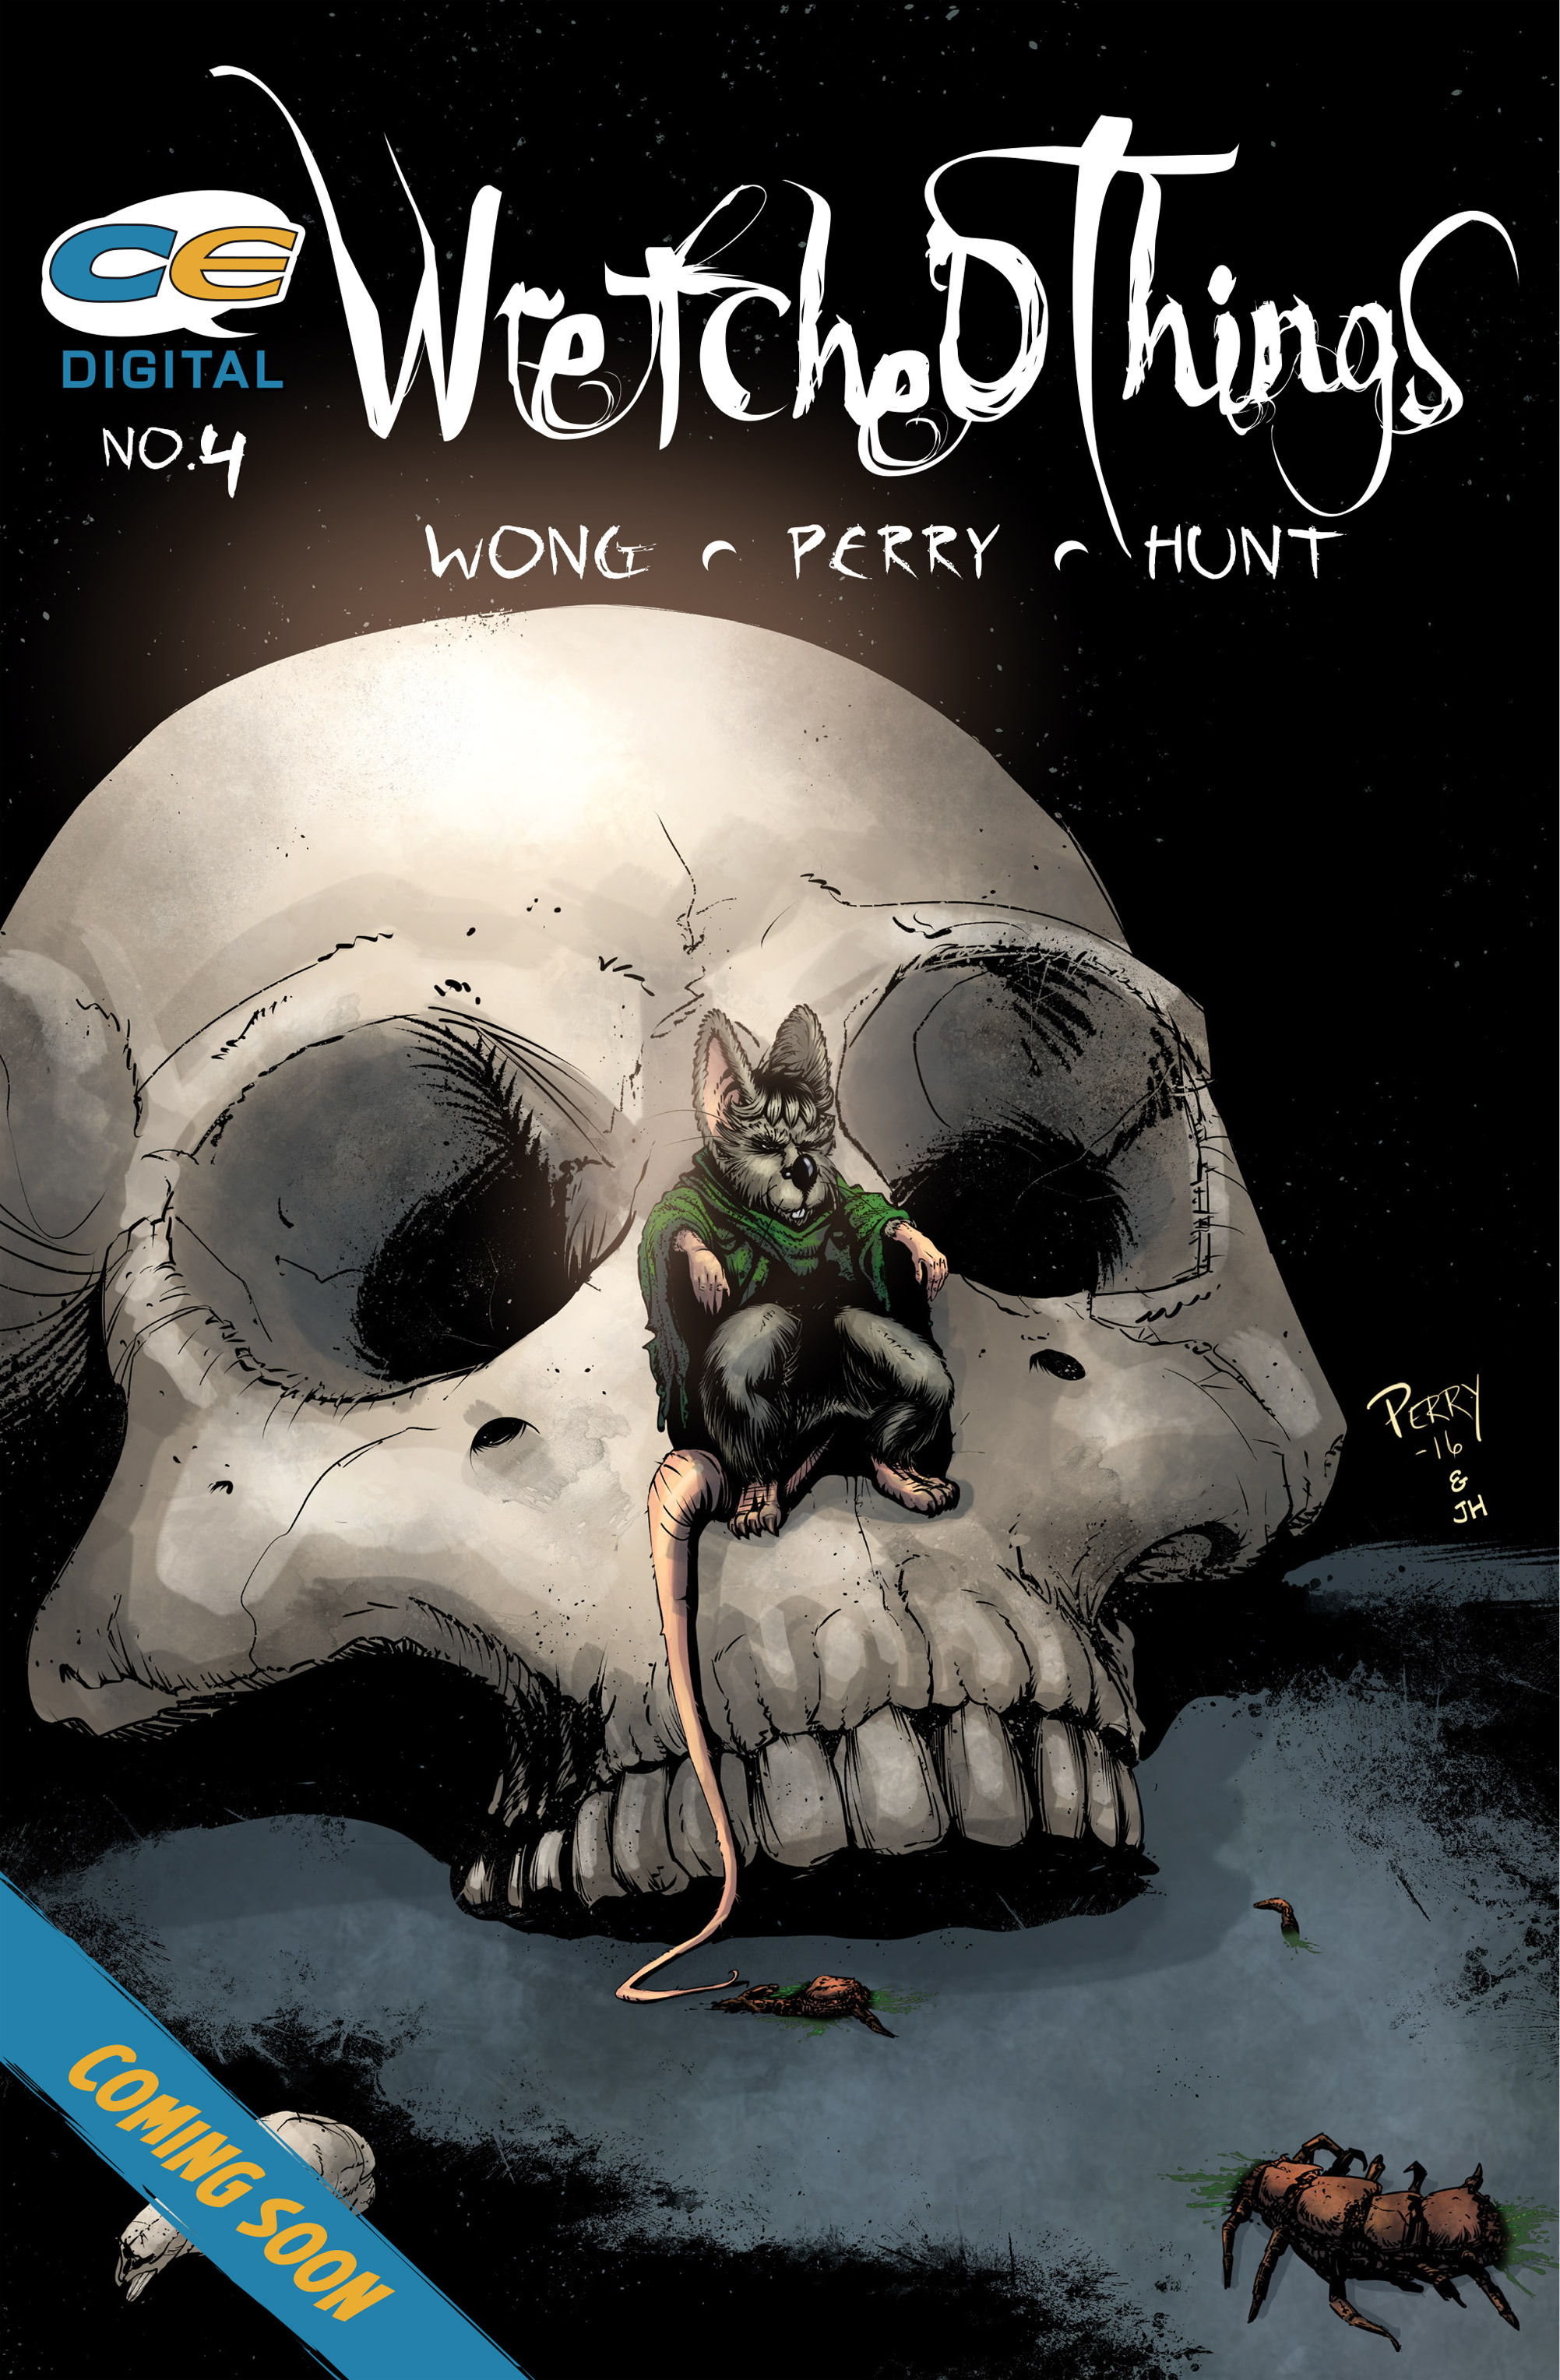 Read online Wretched Things comic -  Issue #3 - 24